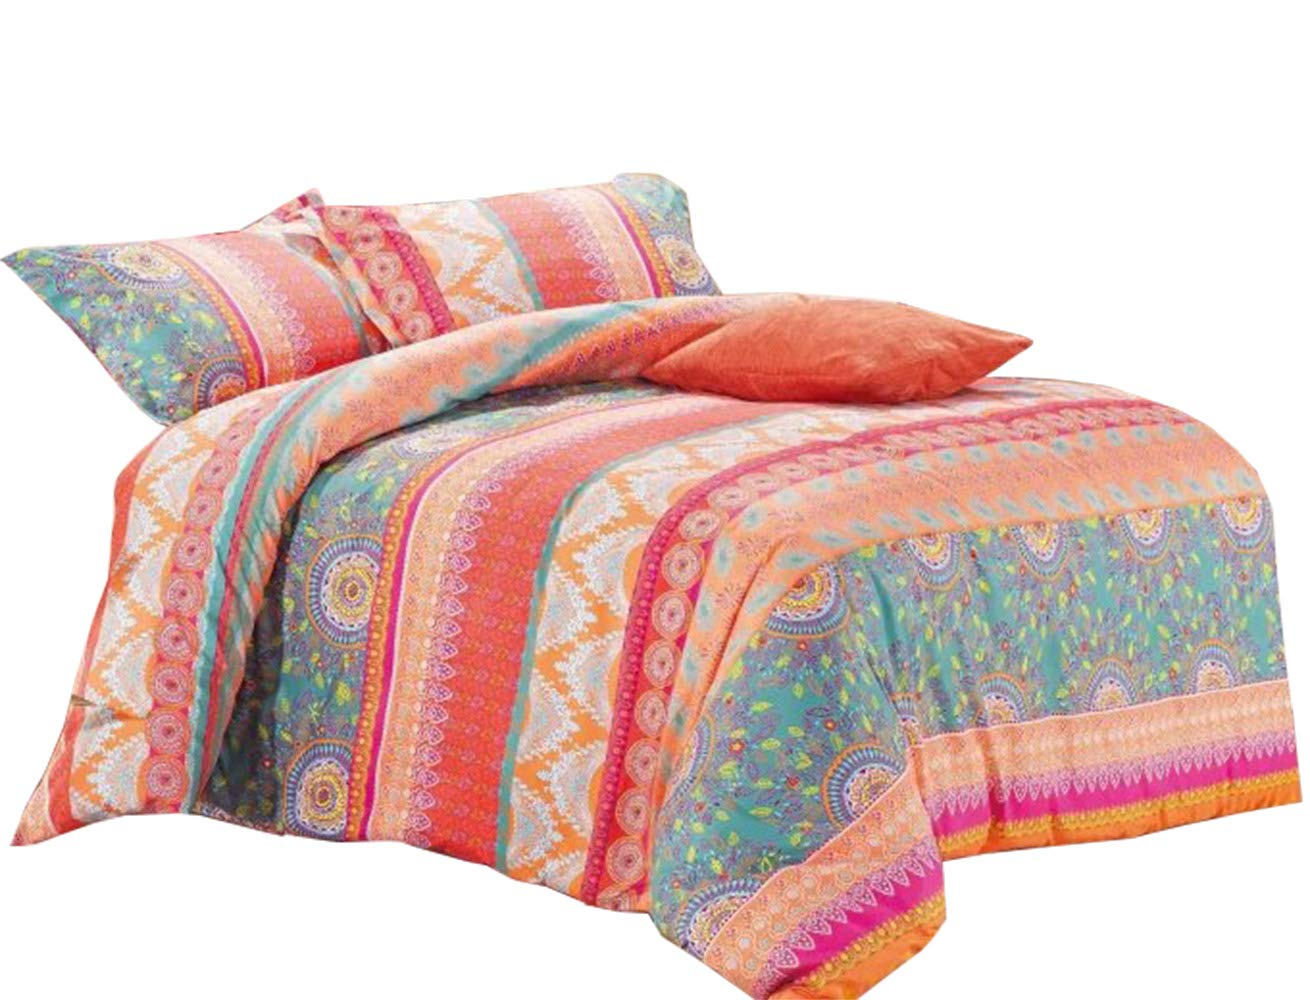 CDM product Wake In Cloud - Bohemian Comforter Set, Orange Coral Boho Chic Mandala Pattern Printed, Soft Microfiber Bedding (3pcs, Twin Size) big image